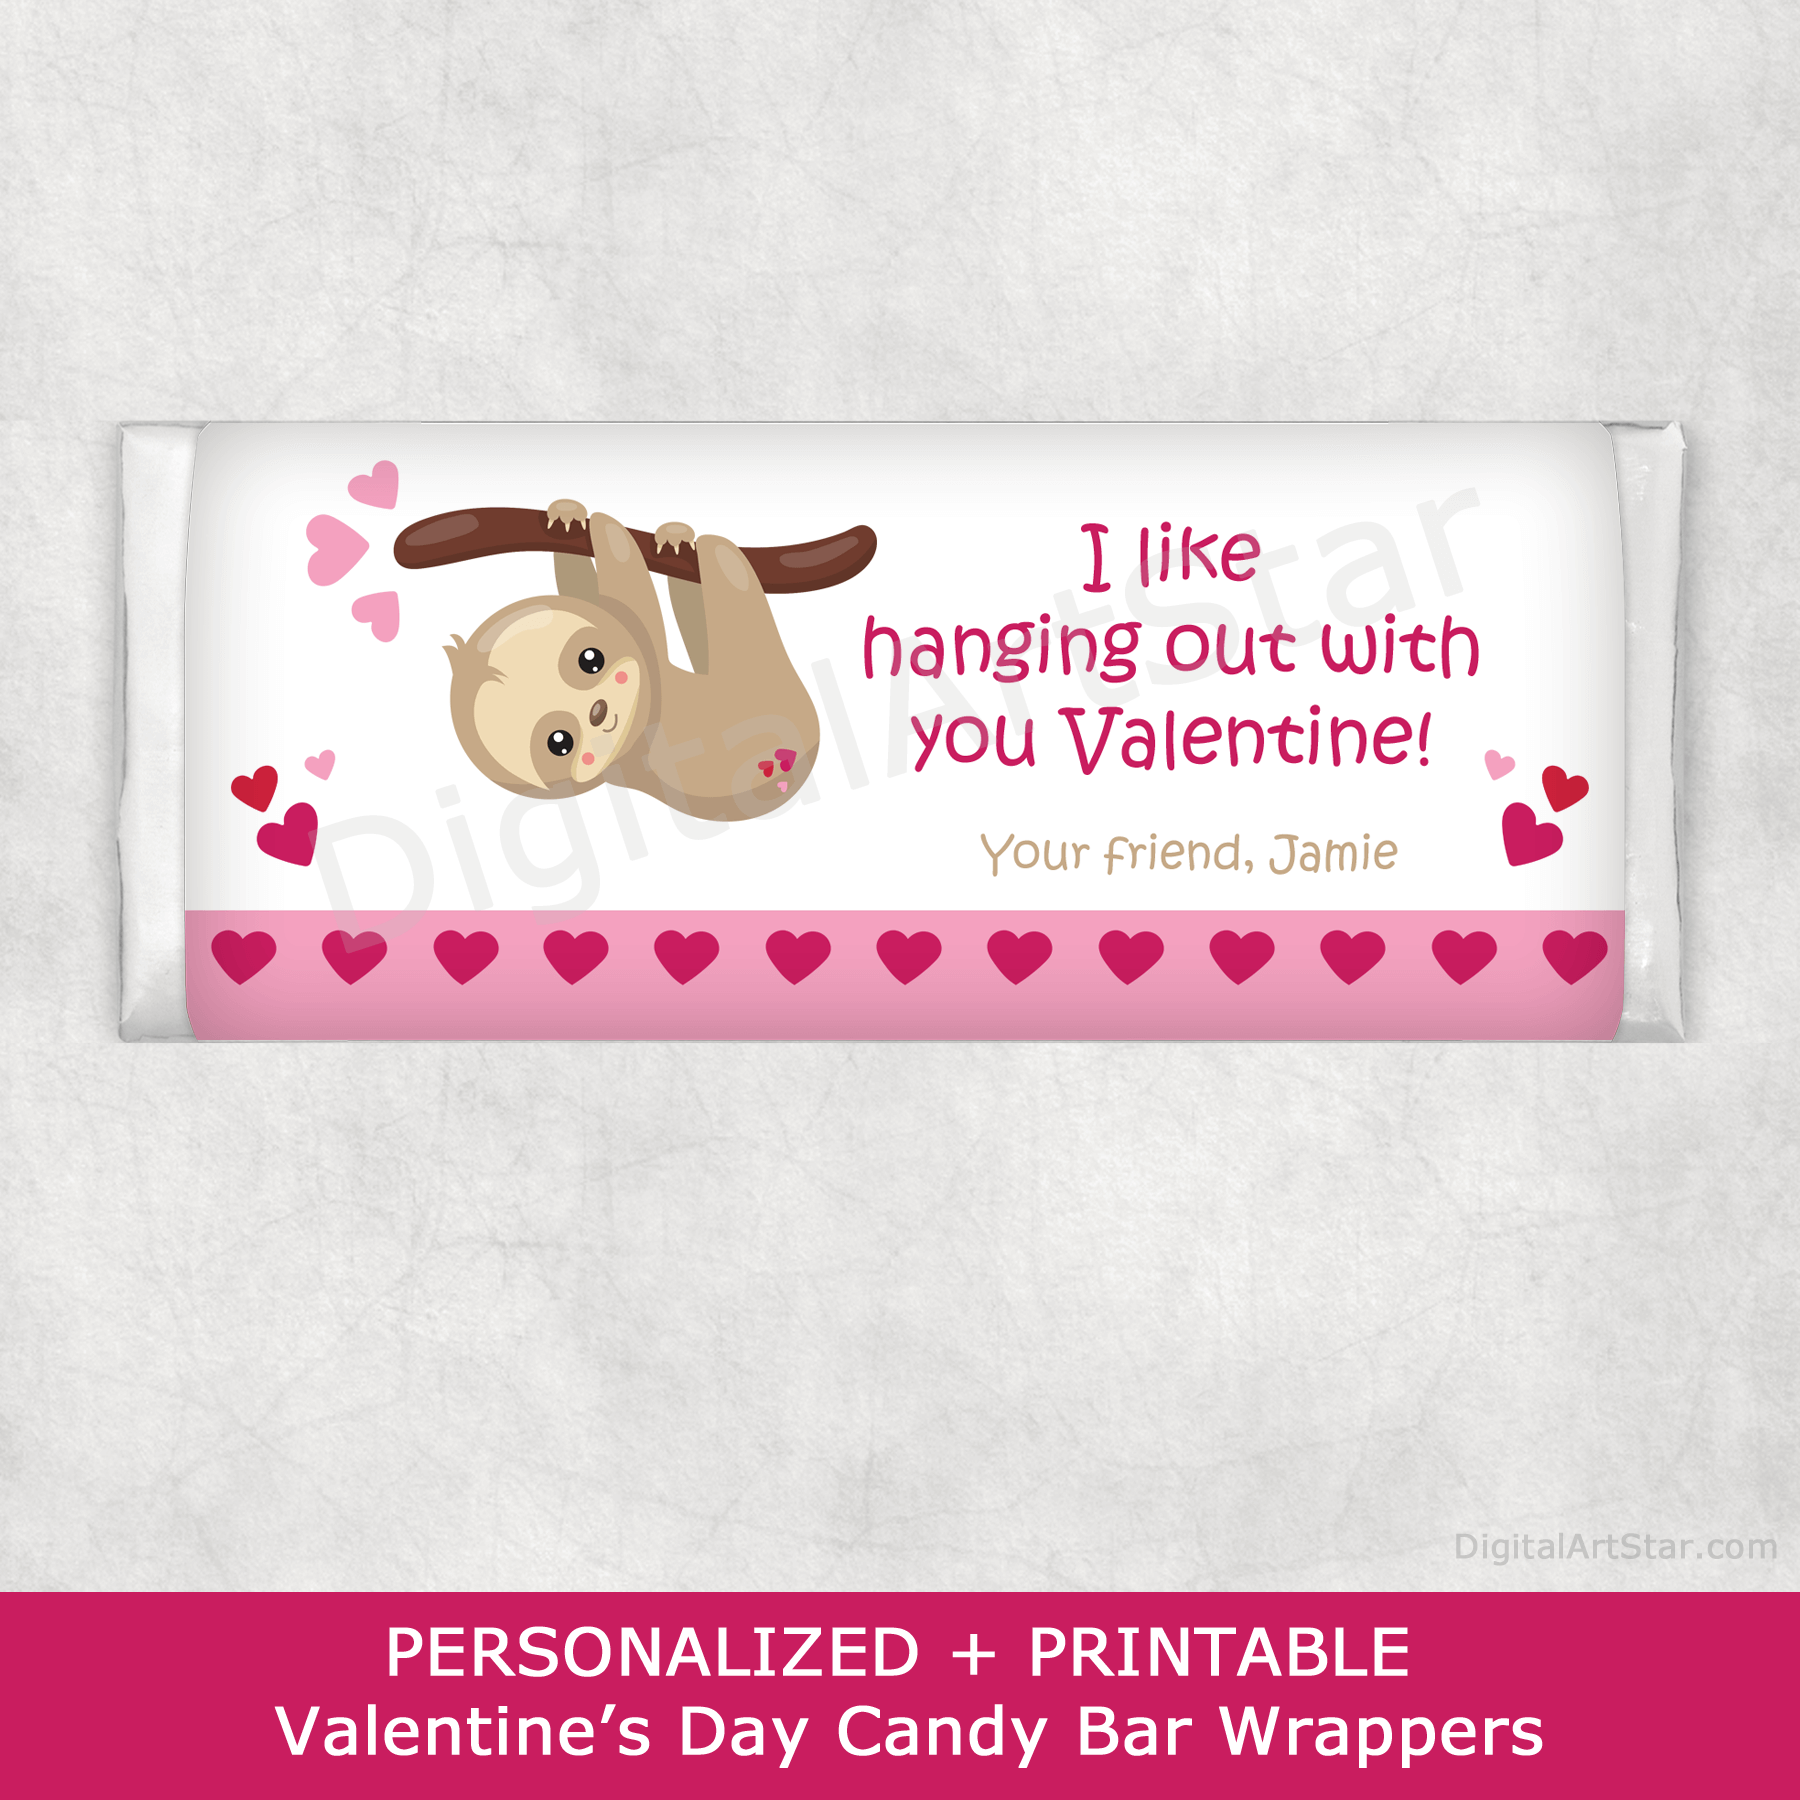 Personalized Valentine Sloth Candy Bar Wrappers to Print